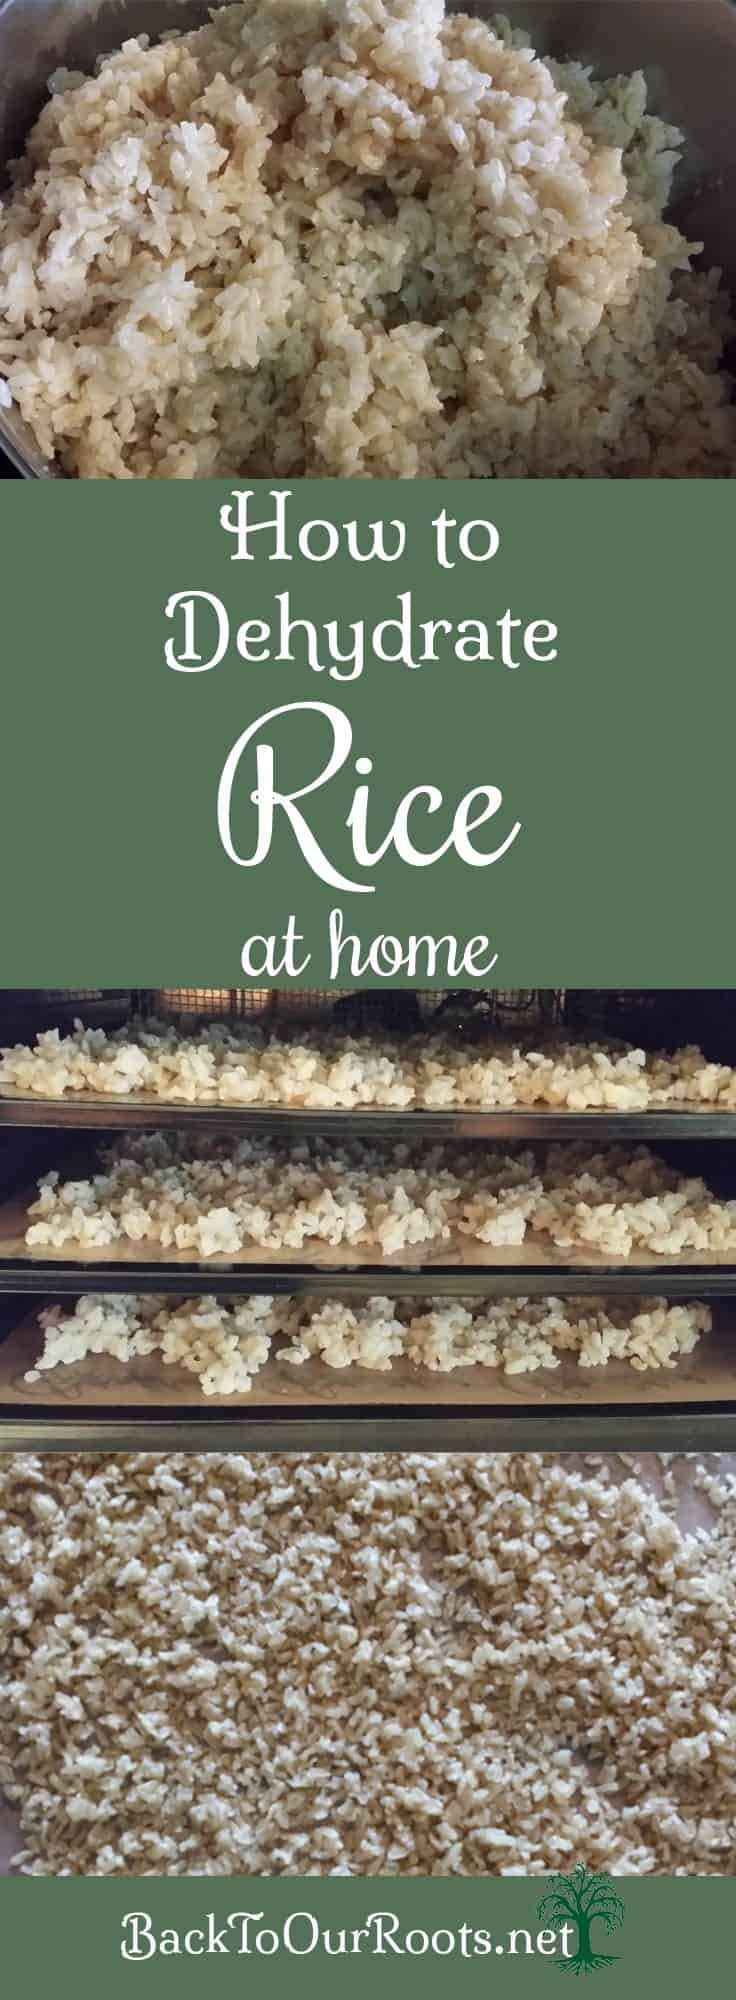 How To make Instant Rice at Home